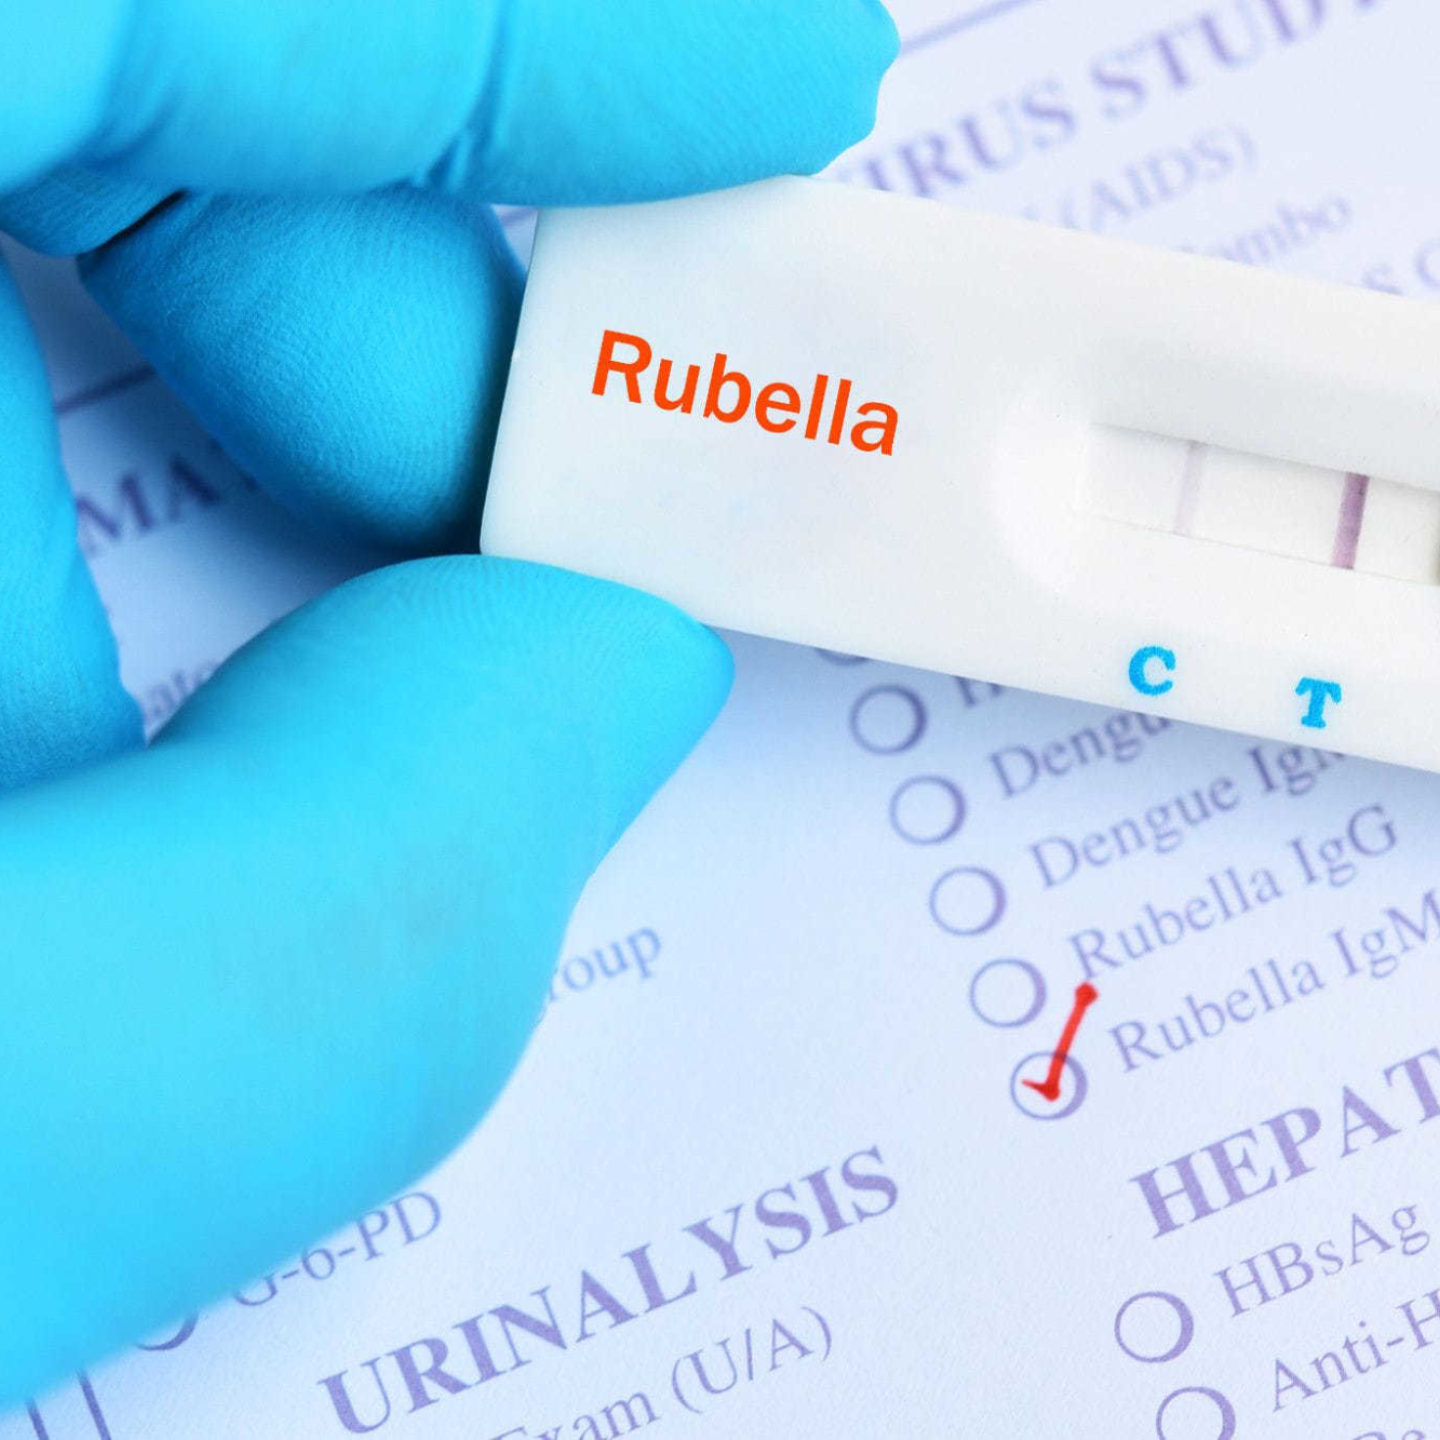 Medical device test for rubella